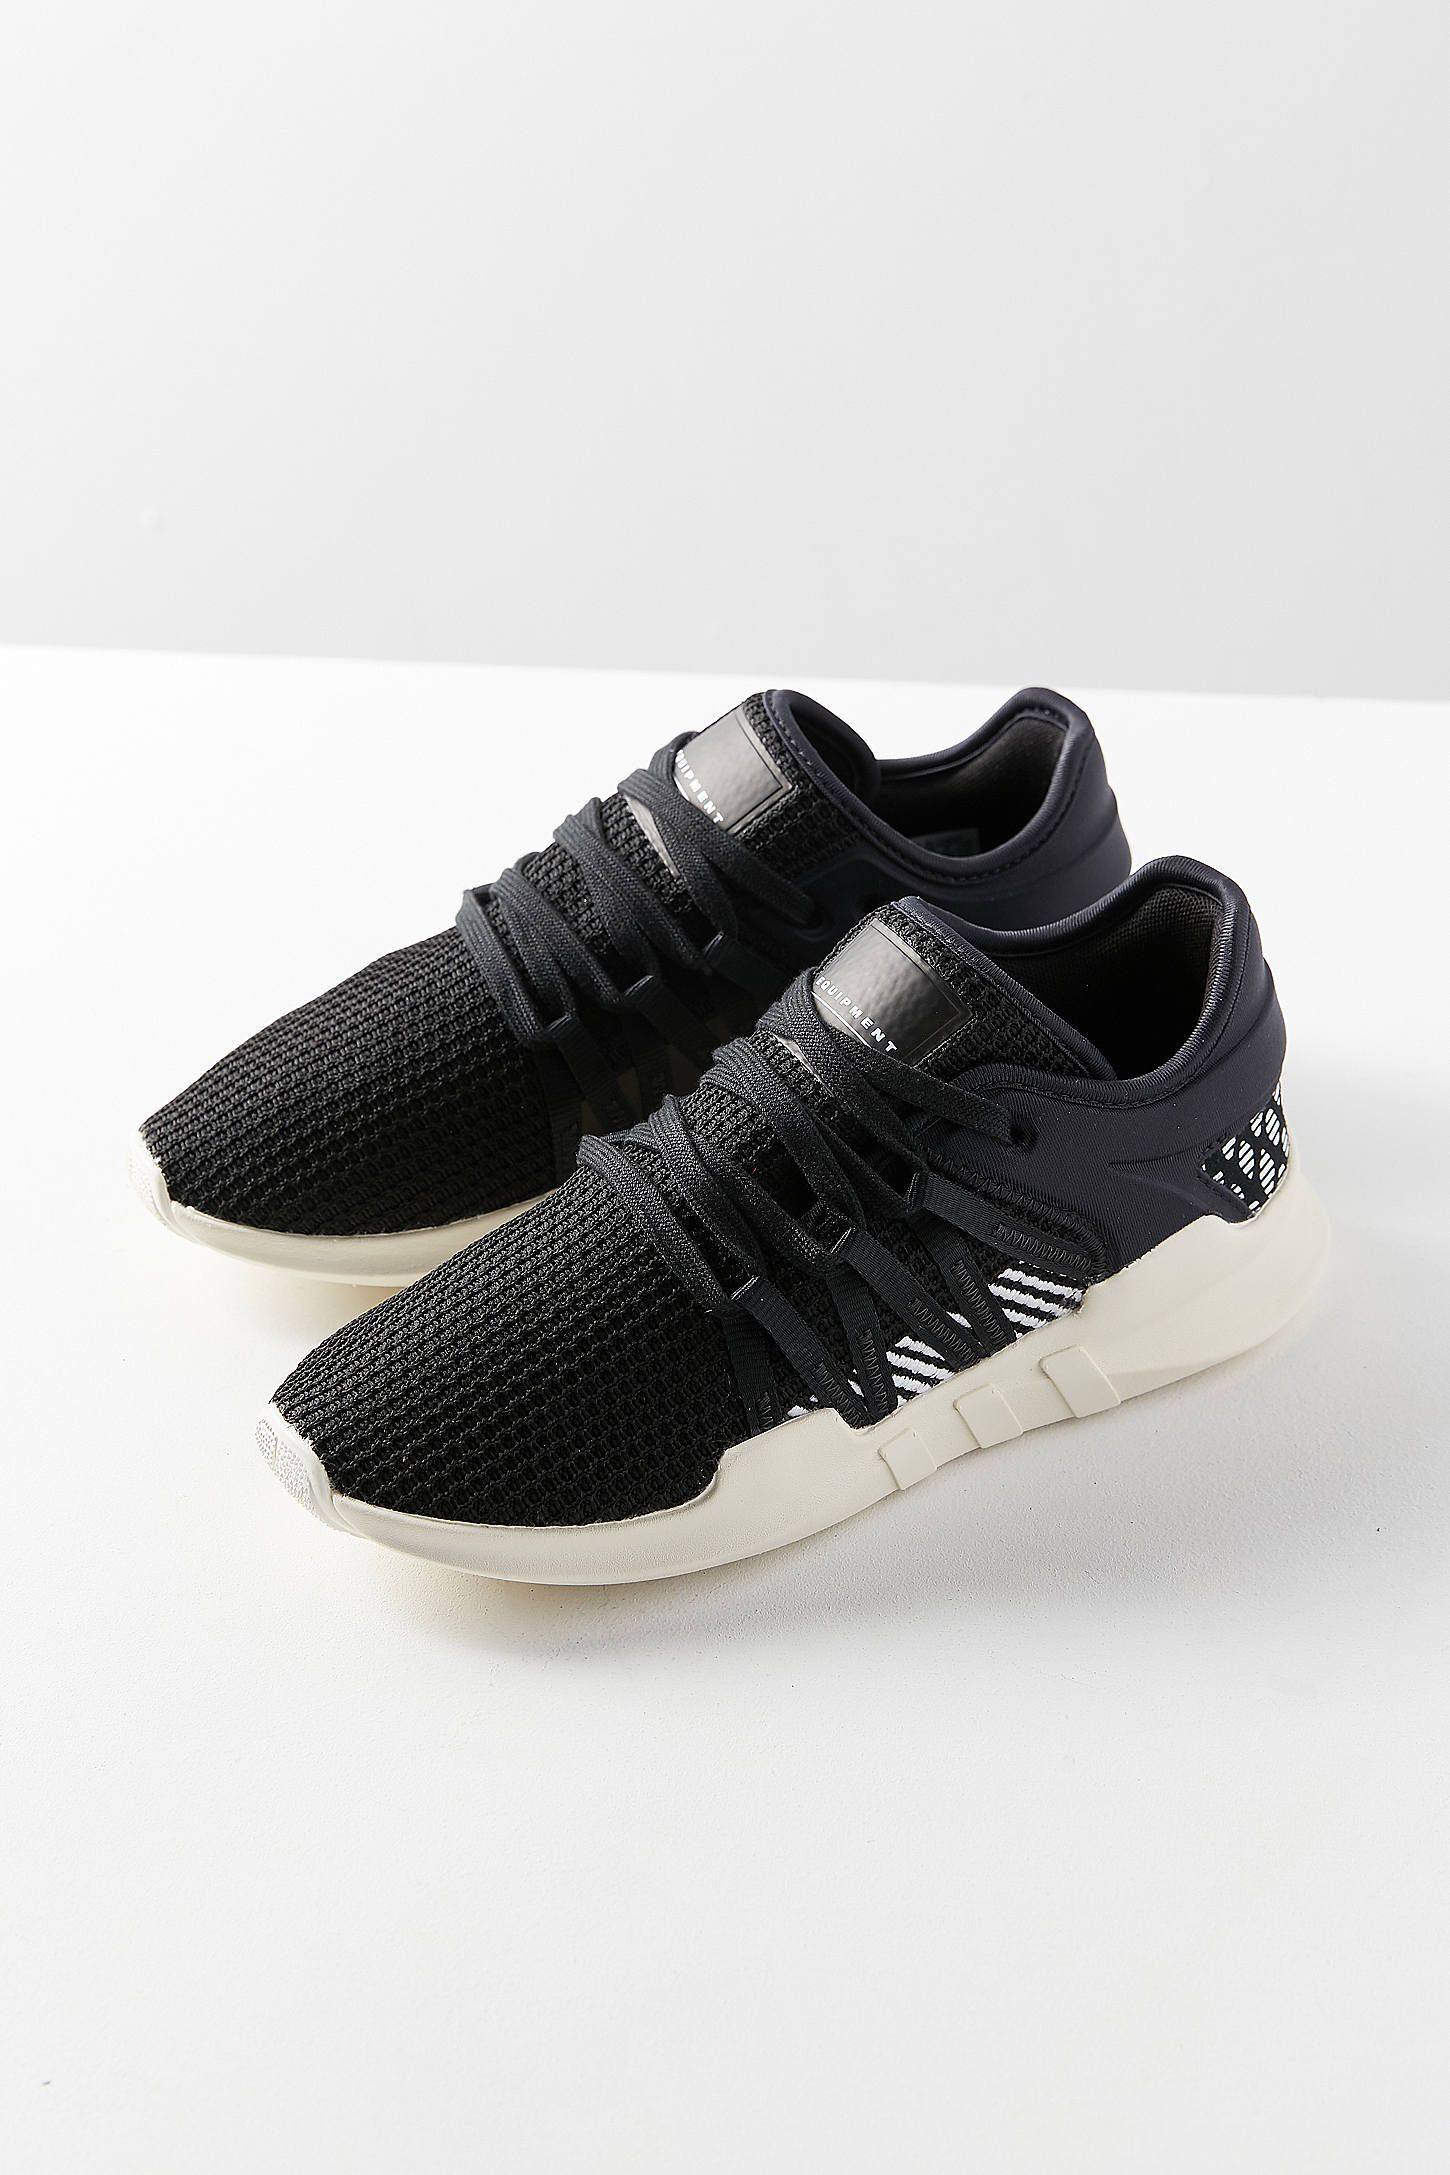 Shop adidas Originals EQT Racing ADV Knit Sneaker at Urban Outfitters  today. We carry all the latest styles 179d92b2c